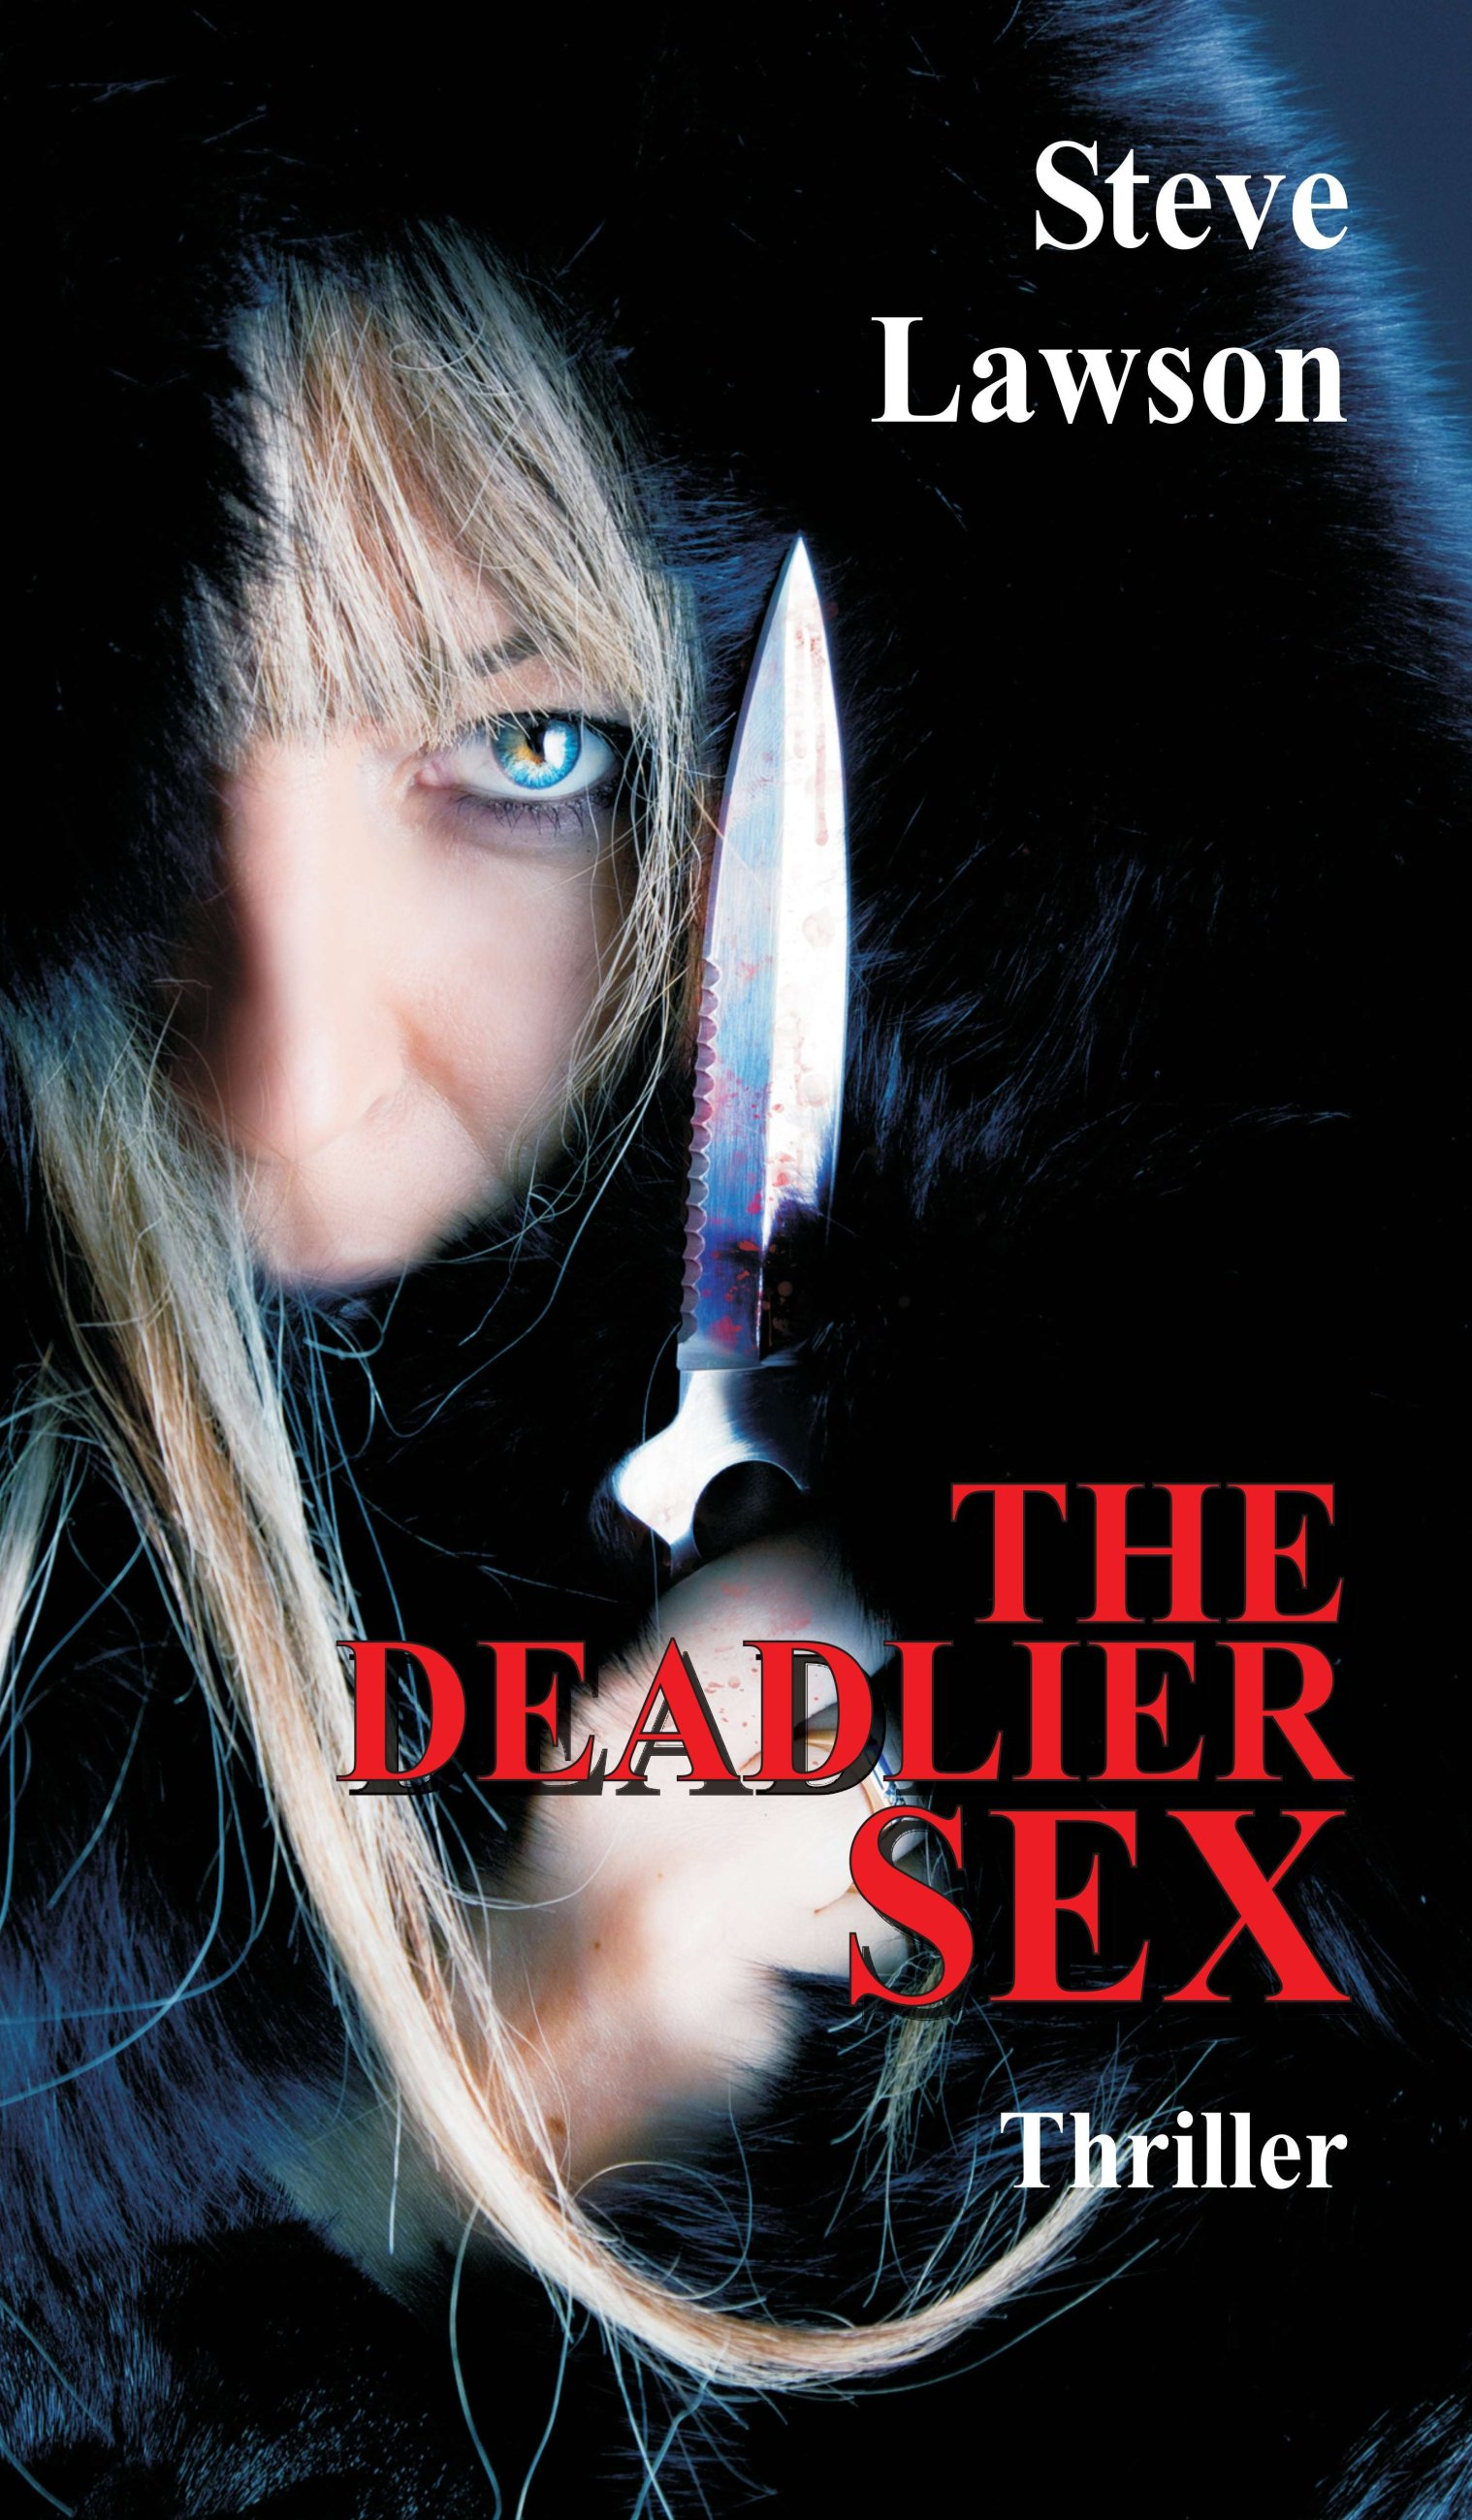 The Deadlier Sex - Exciting novel about murder and beautiful women